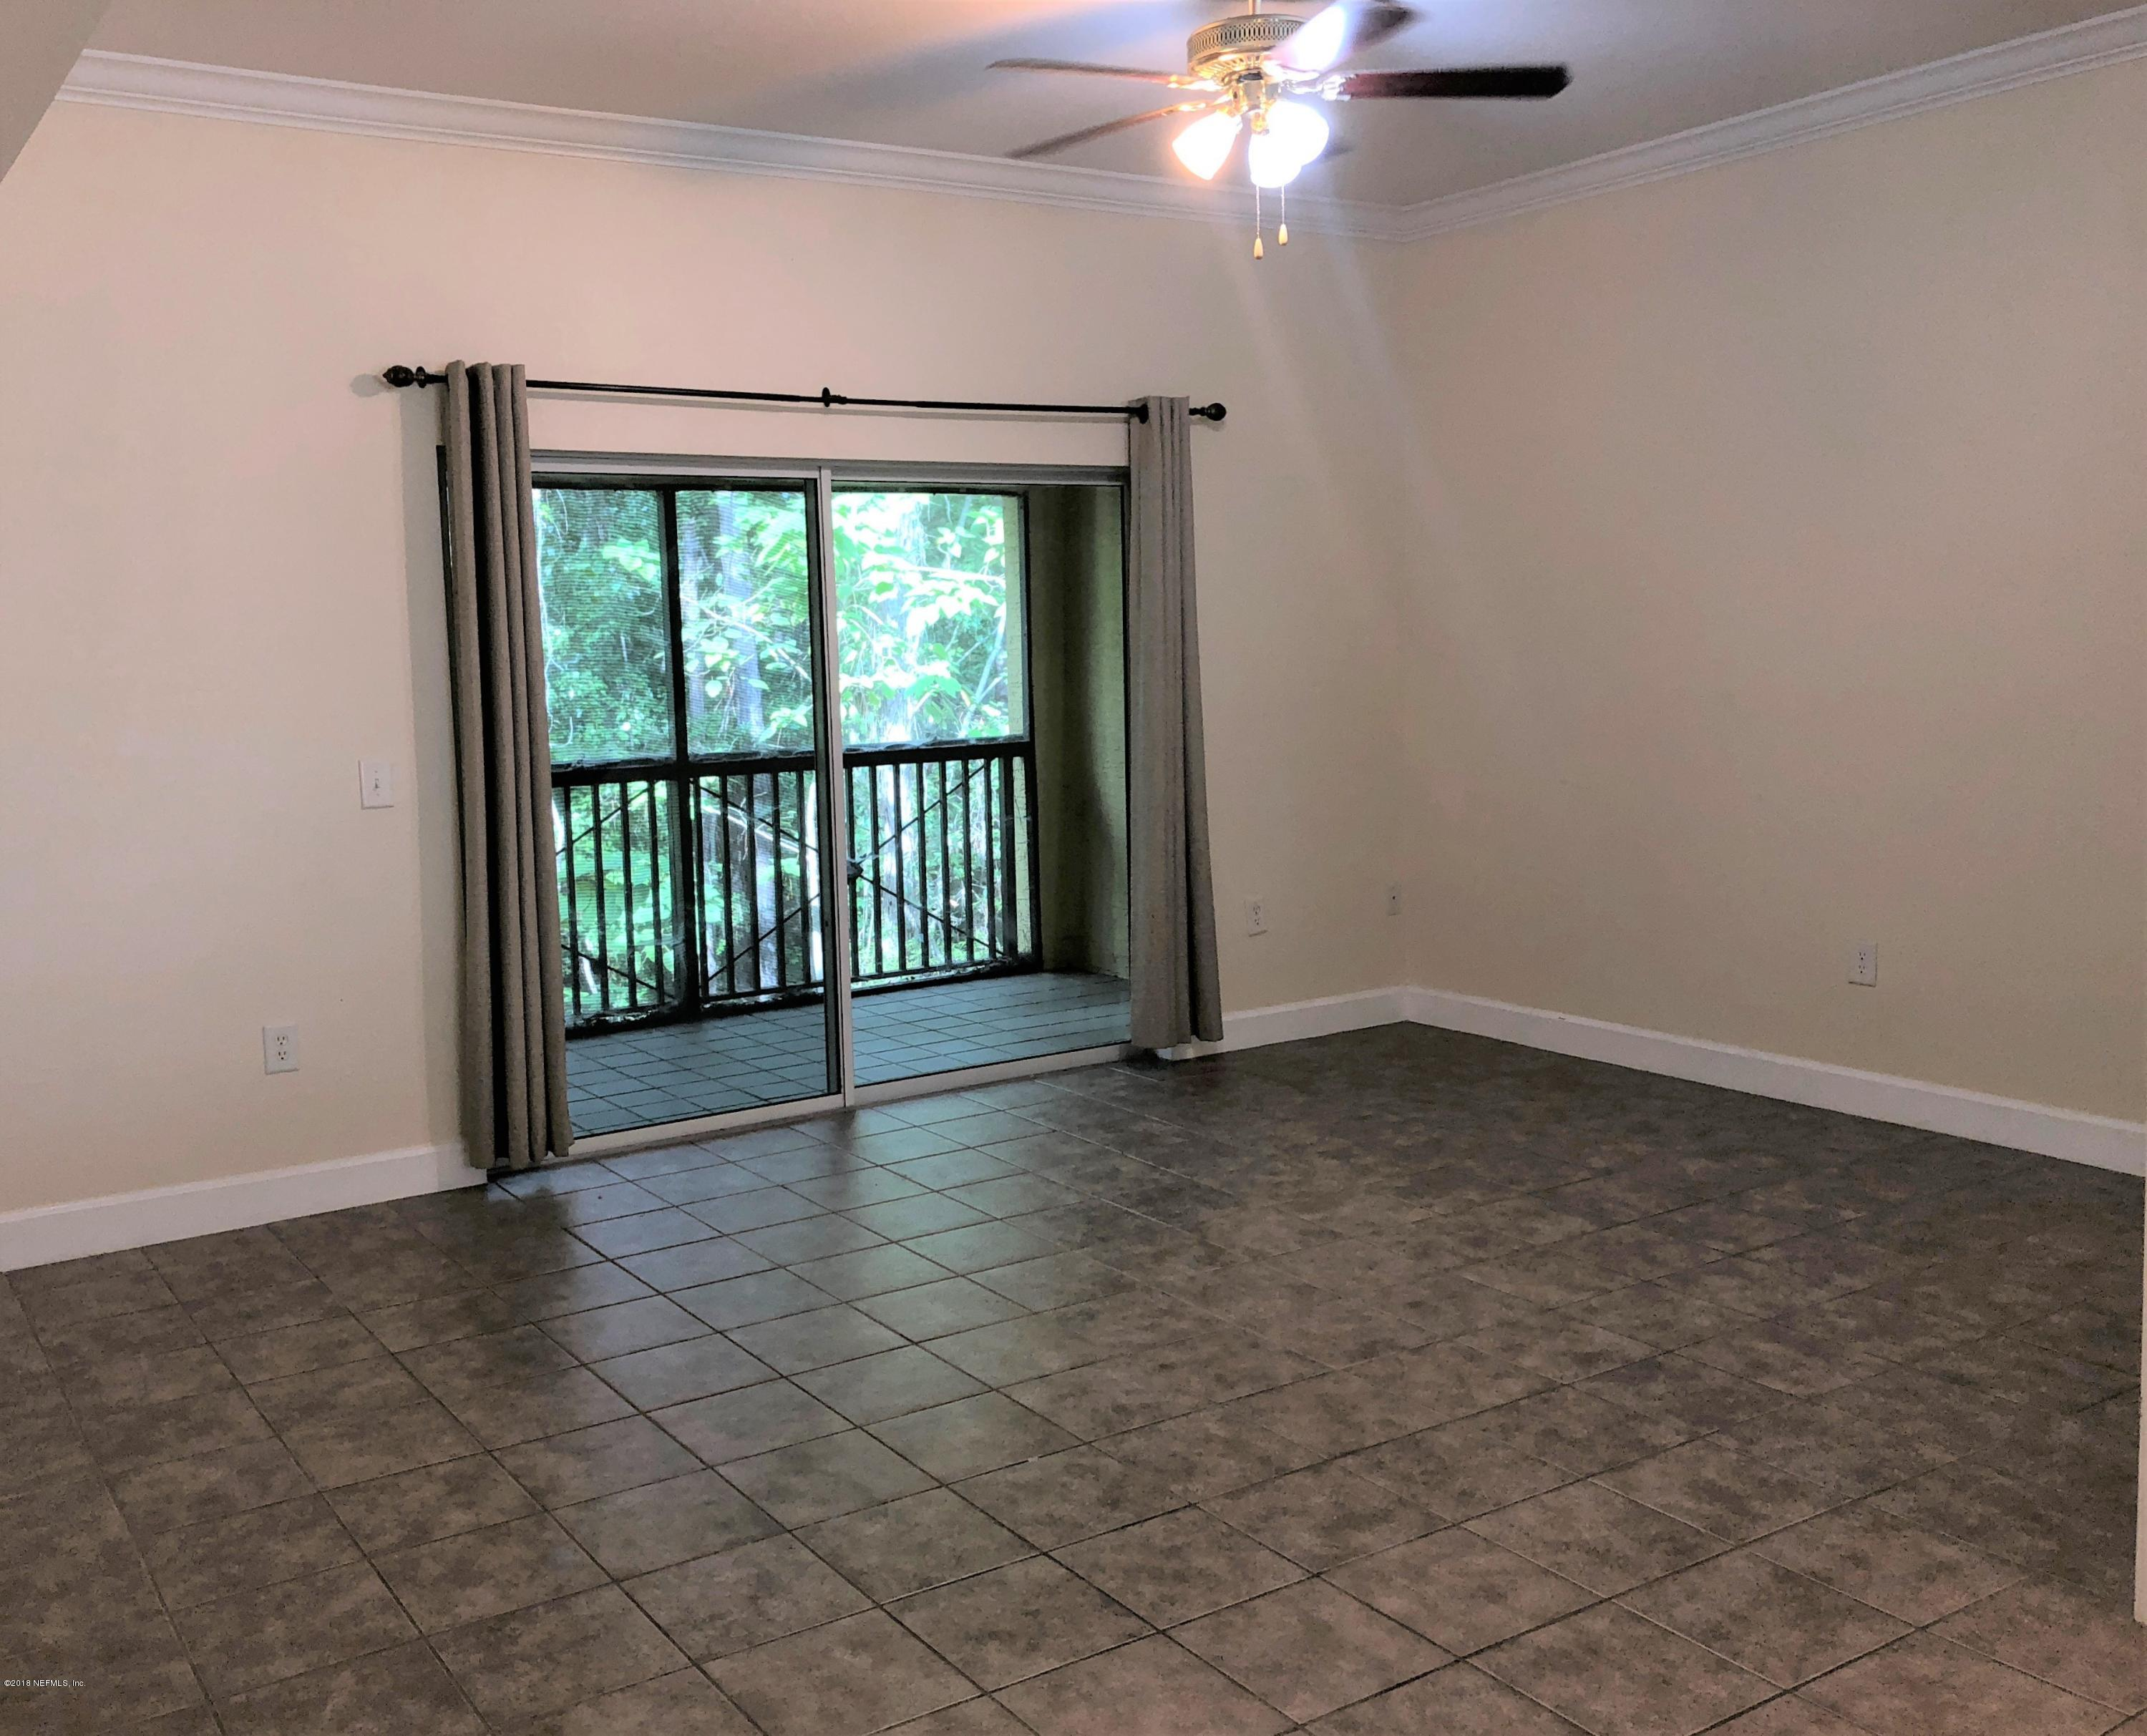 9745 TOUCHTON, JACKSONVILLE, FLORIDA 32246, 2 Bedrooms Bedrooms, ,2 BathroomsBathrooms,Residential - condos/townhomes,For sale,TOUCHTON,952070